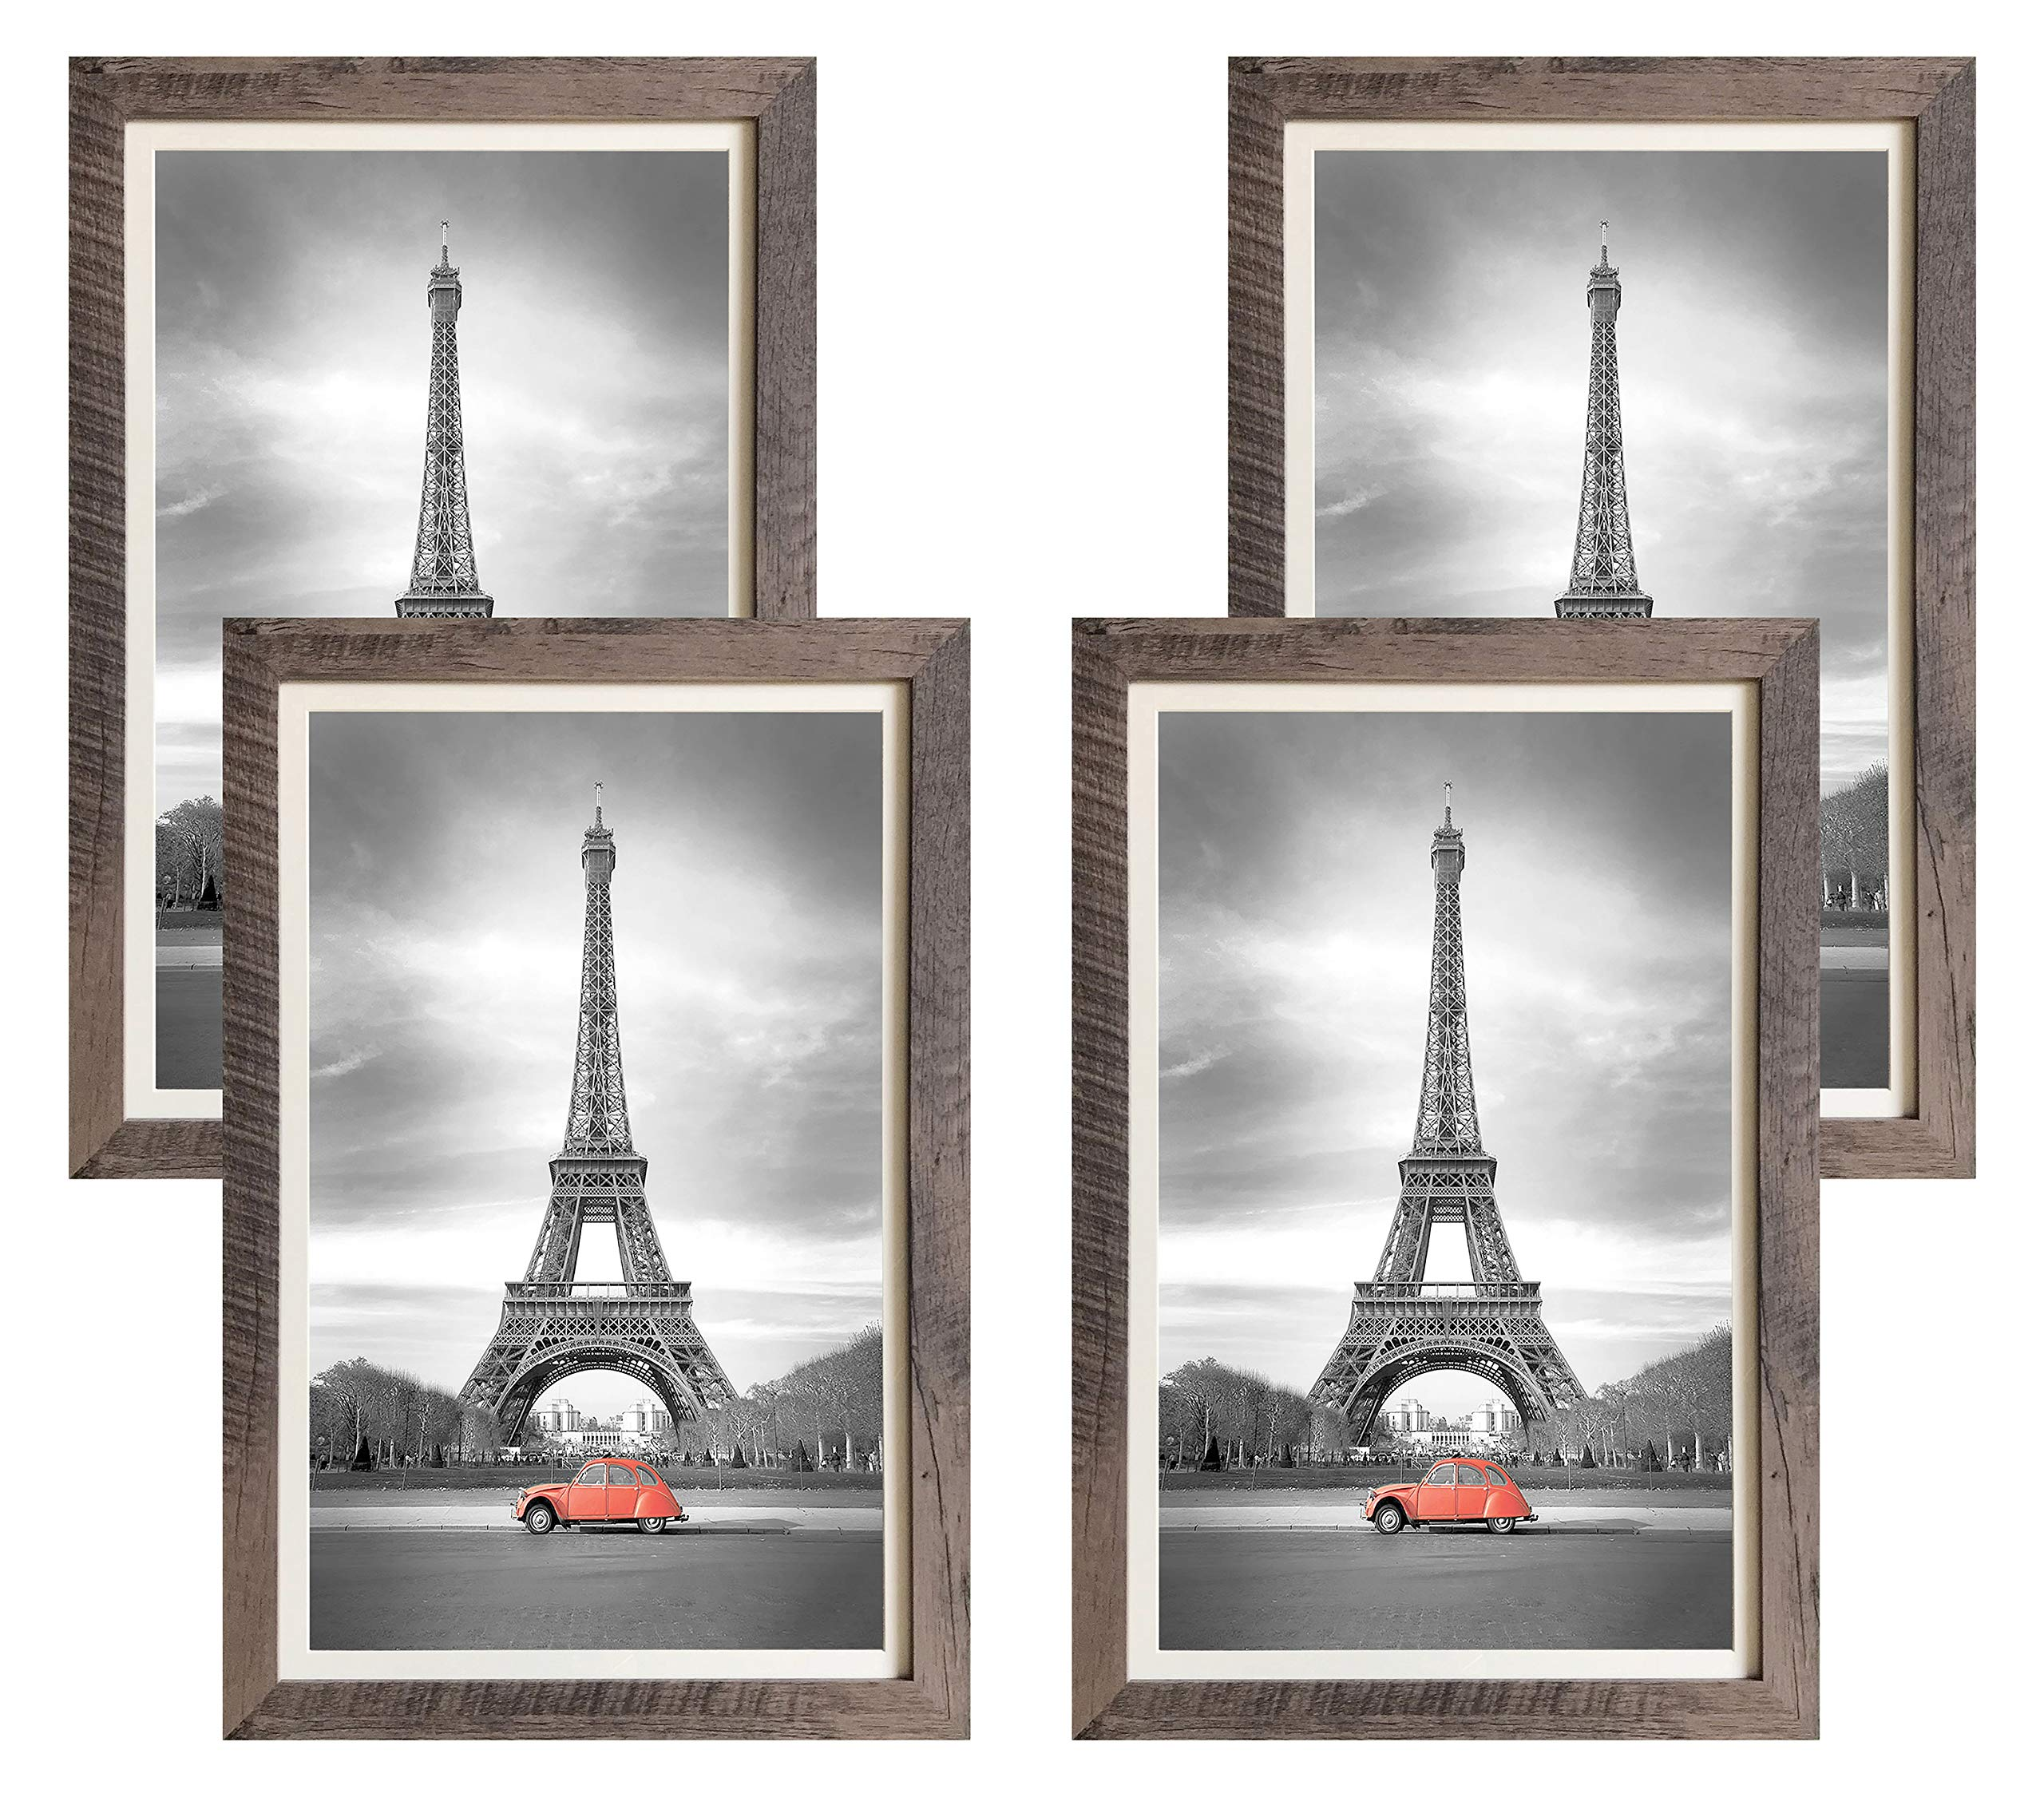 Art Emotion Rustic Oak Style Picture Frame, 2MM Reinforced Glass, Dark Oak Finish 12x18 Frame for 11x17 Photo (12x18 Without MAT), Hangers Included for Horizontal or Vertical Hanging, Pack of 4